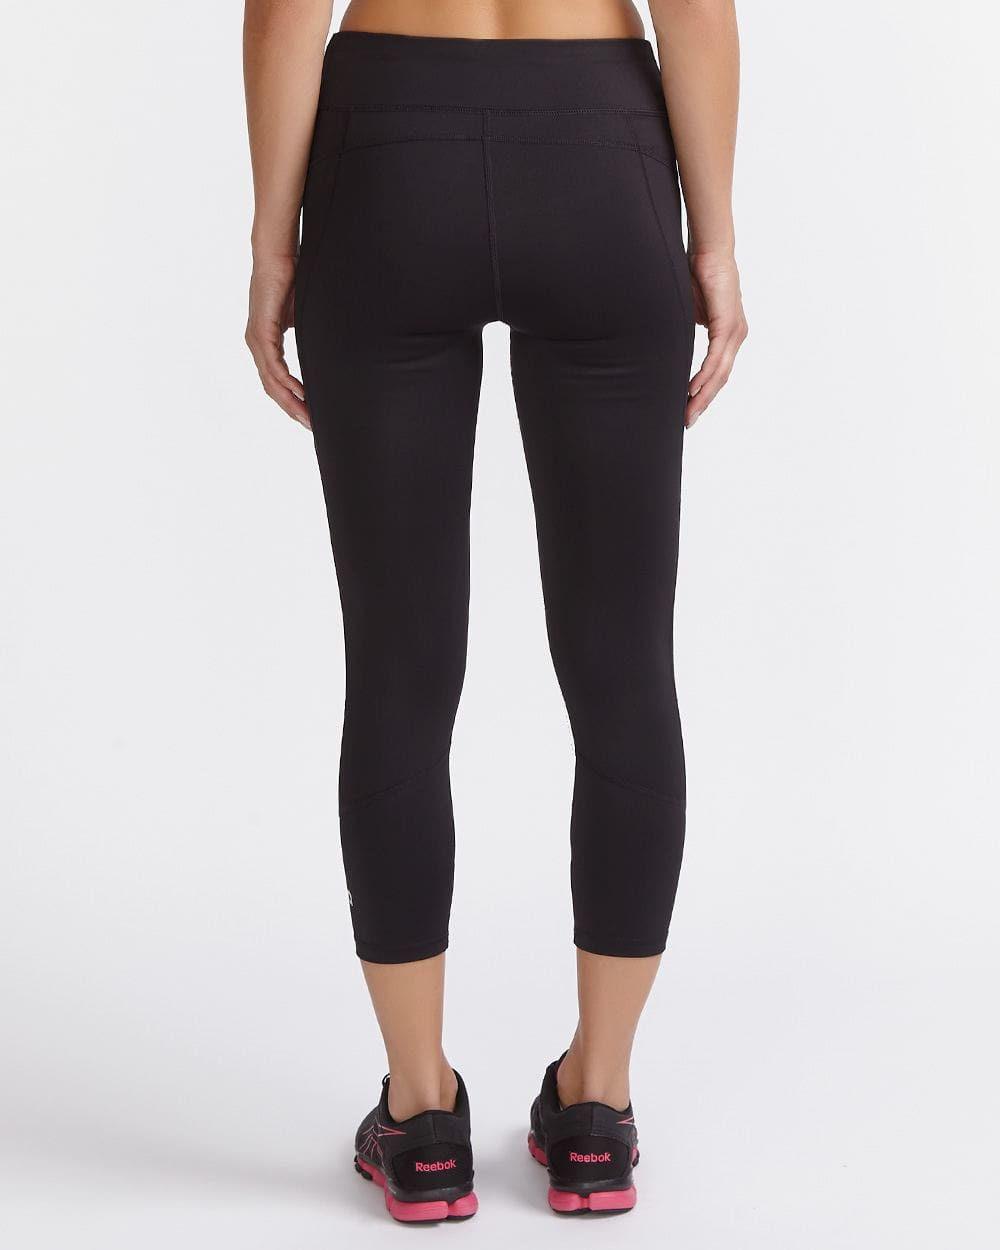 Hyba Cropped Mesh Training Legging